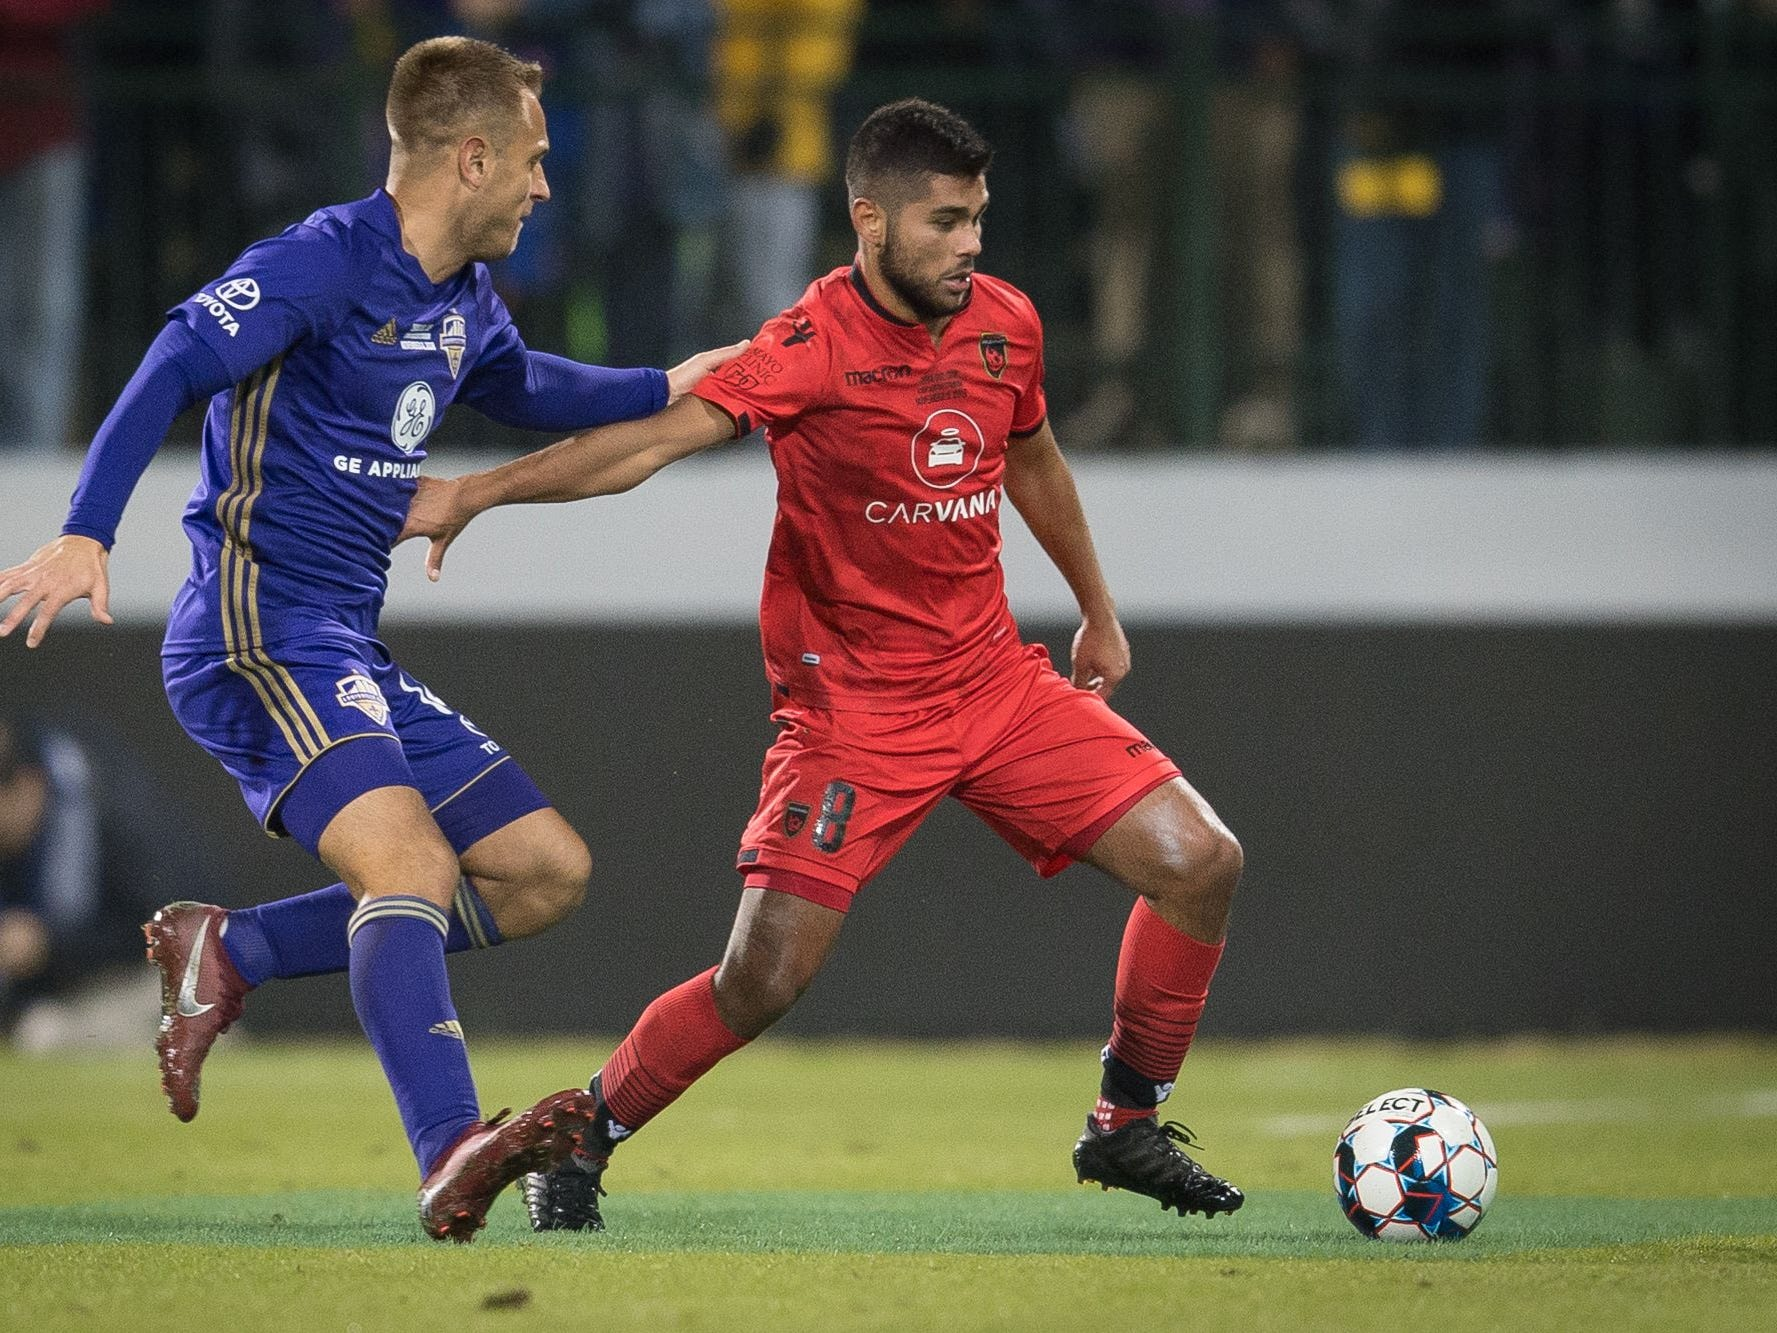 Phoenix Rising FC midfielder Collin Fernandez (8) plays against Louisville City FC forward Ilija Ilić (14) during the USL Cup final played at Lynn Stadium on the campus of the University of Louisville, Louisville, Ky., Thursday, Nov., 8, 2018.